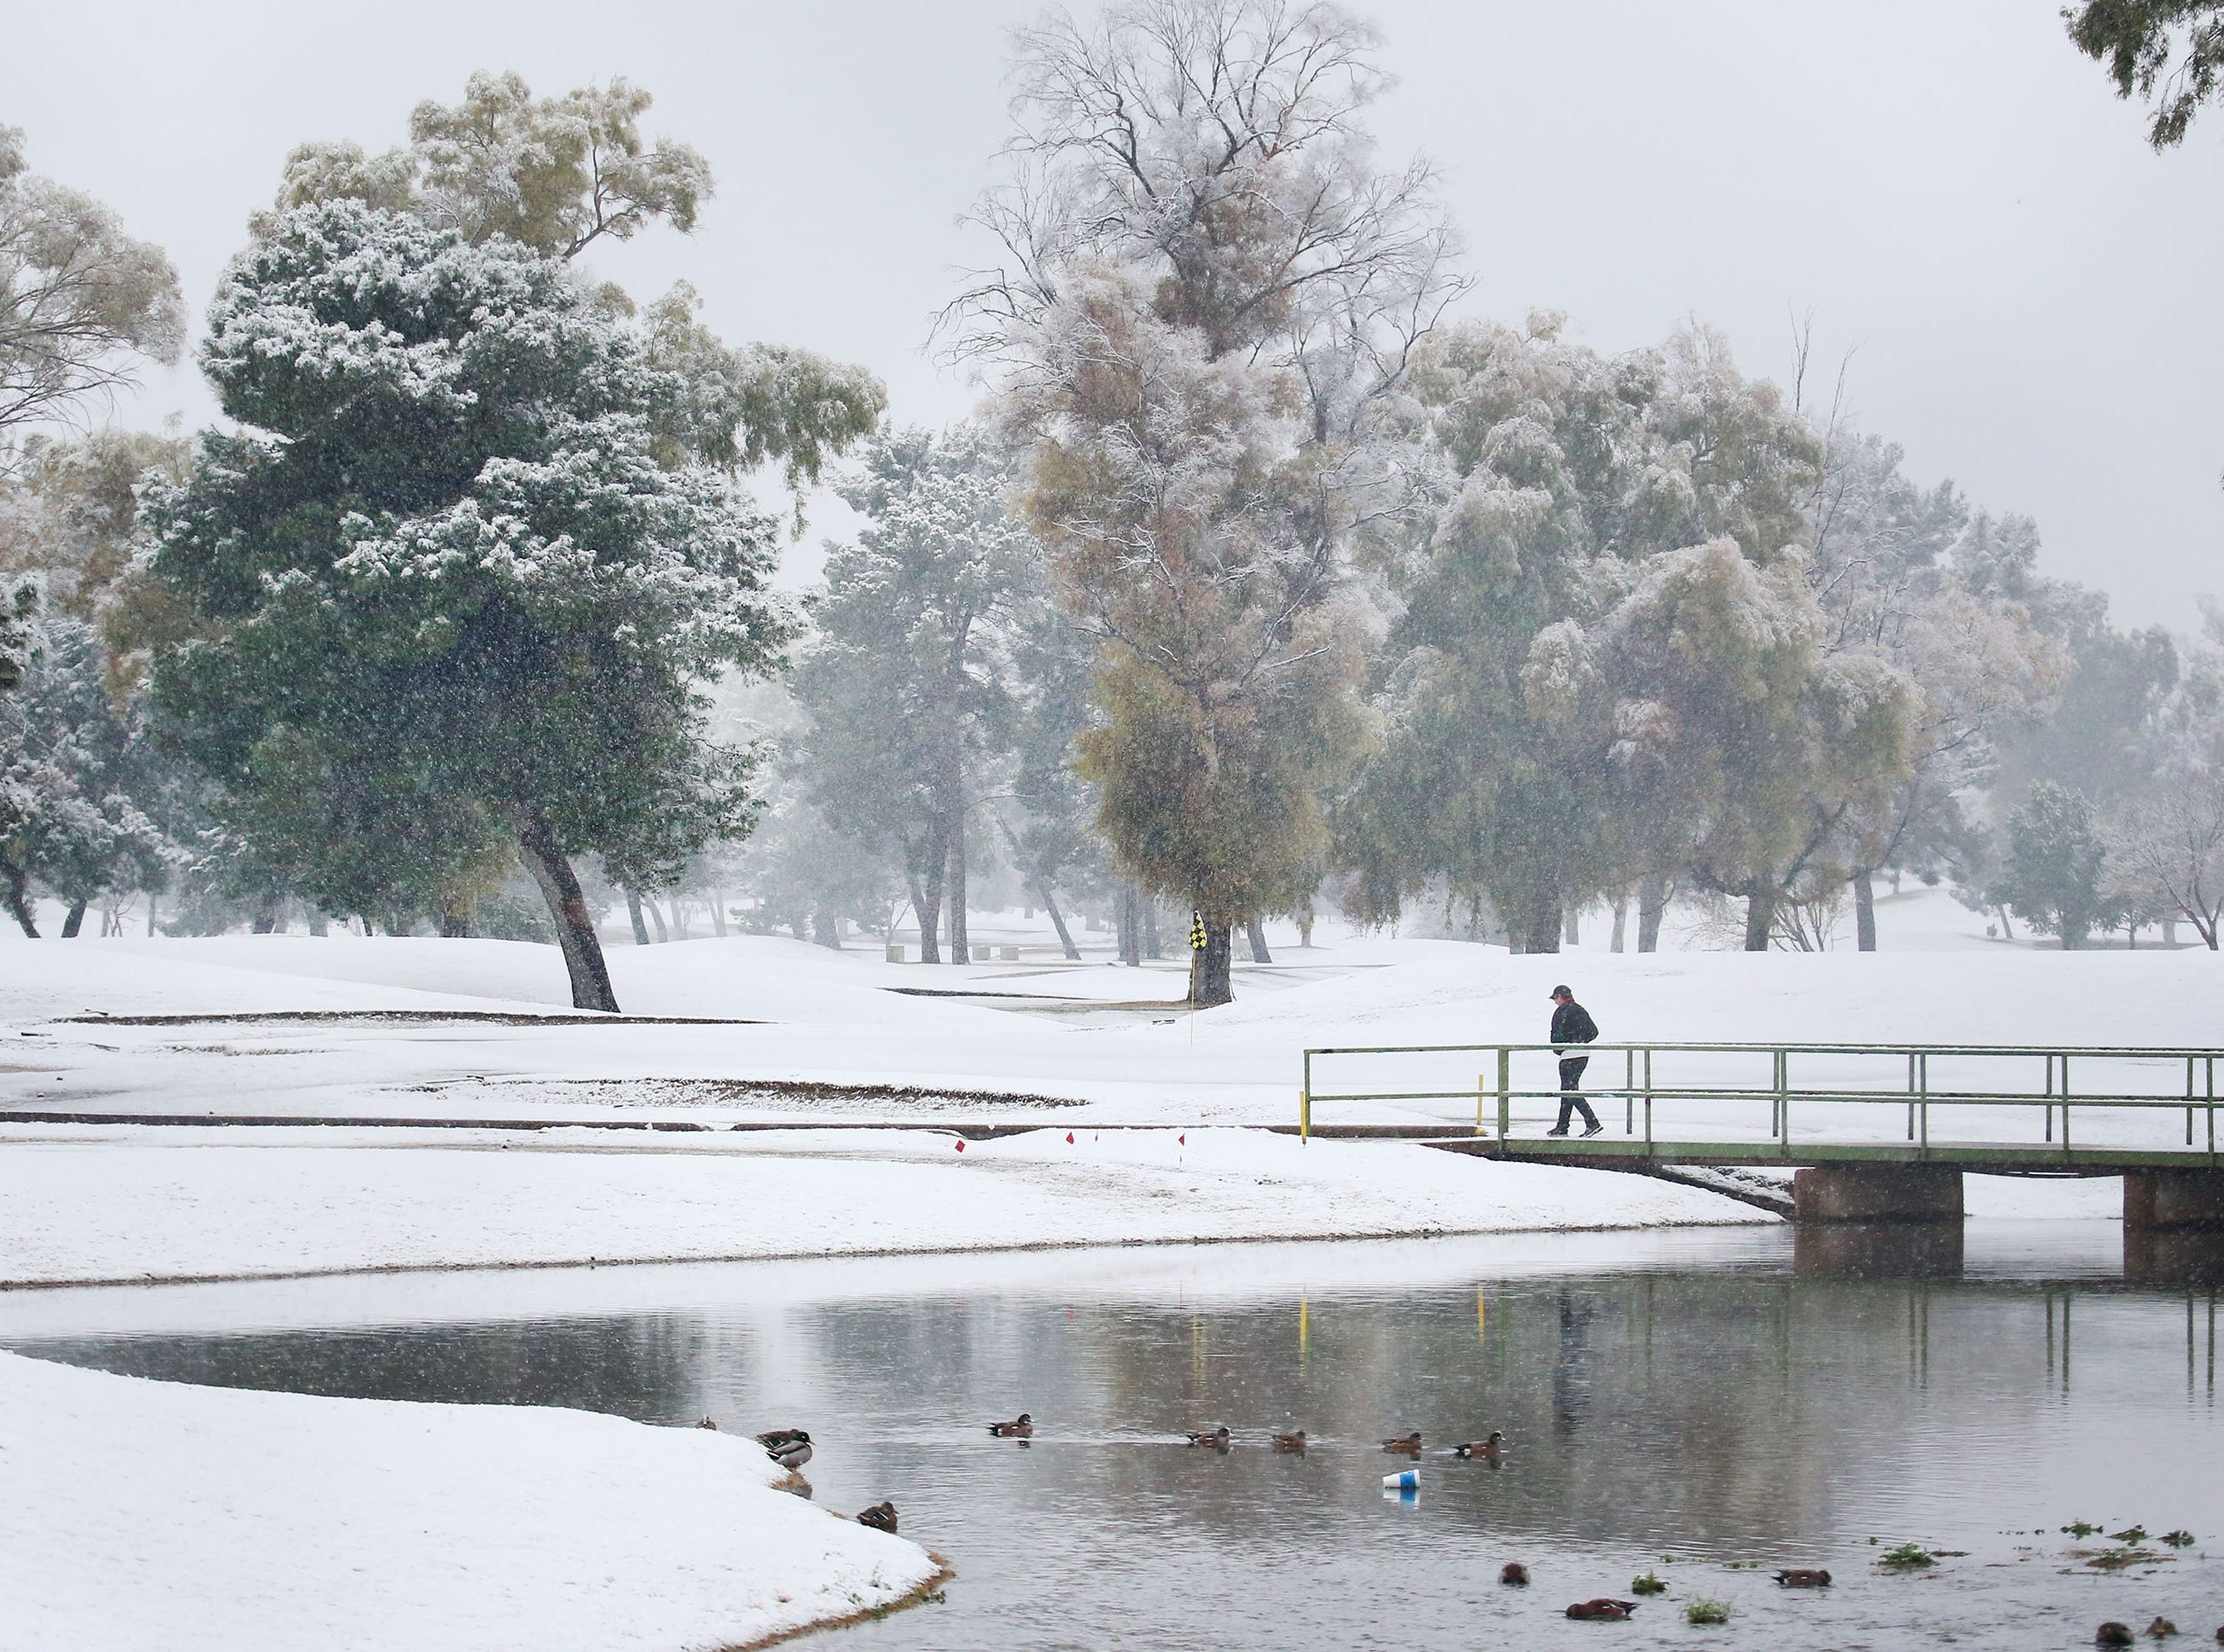 Hole No. 9 at Randolph Golf Course looks to be playing a bit long today as the Tucson area receives snowfall following a late February storm system Feb. 22, 2019.